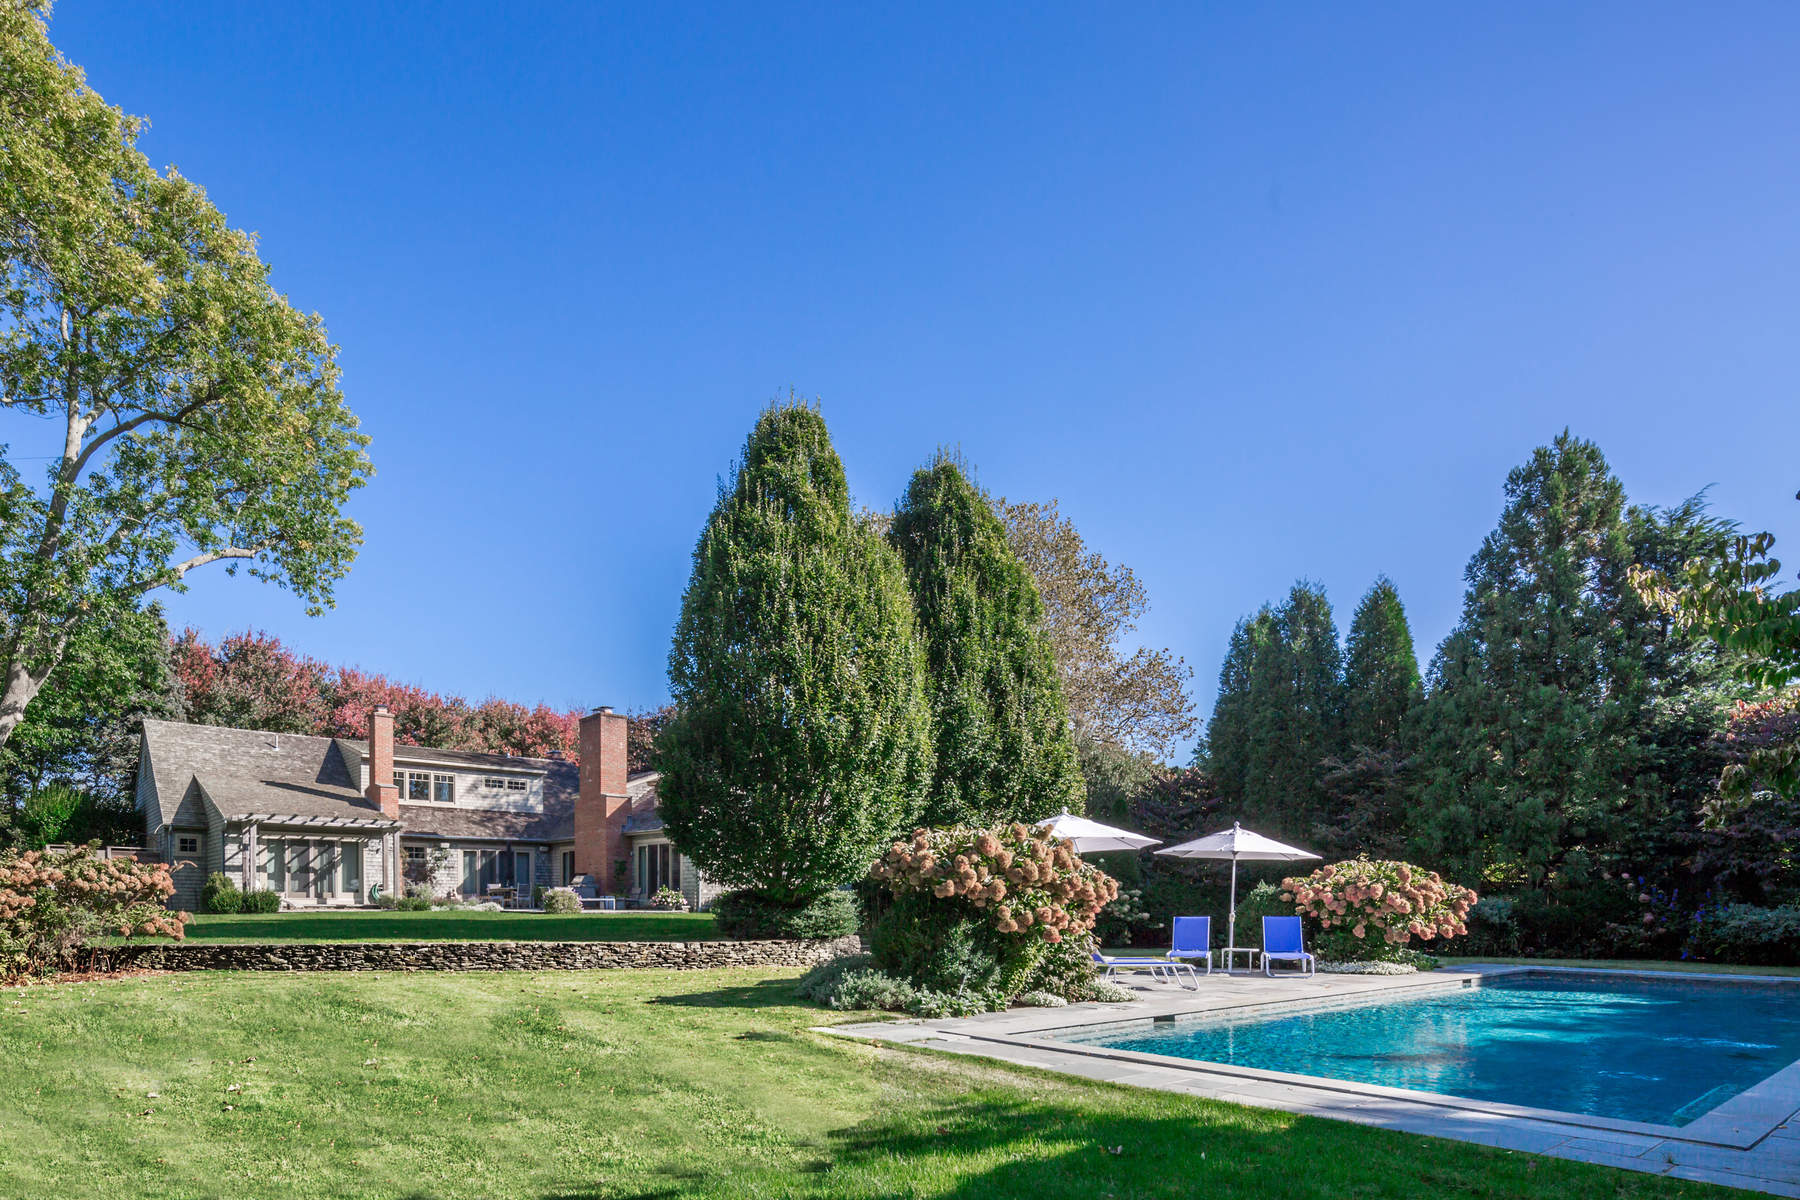 Single Family Home for Rent at East Hampton Village Oasis. East Hampton, New York 11937 United States